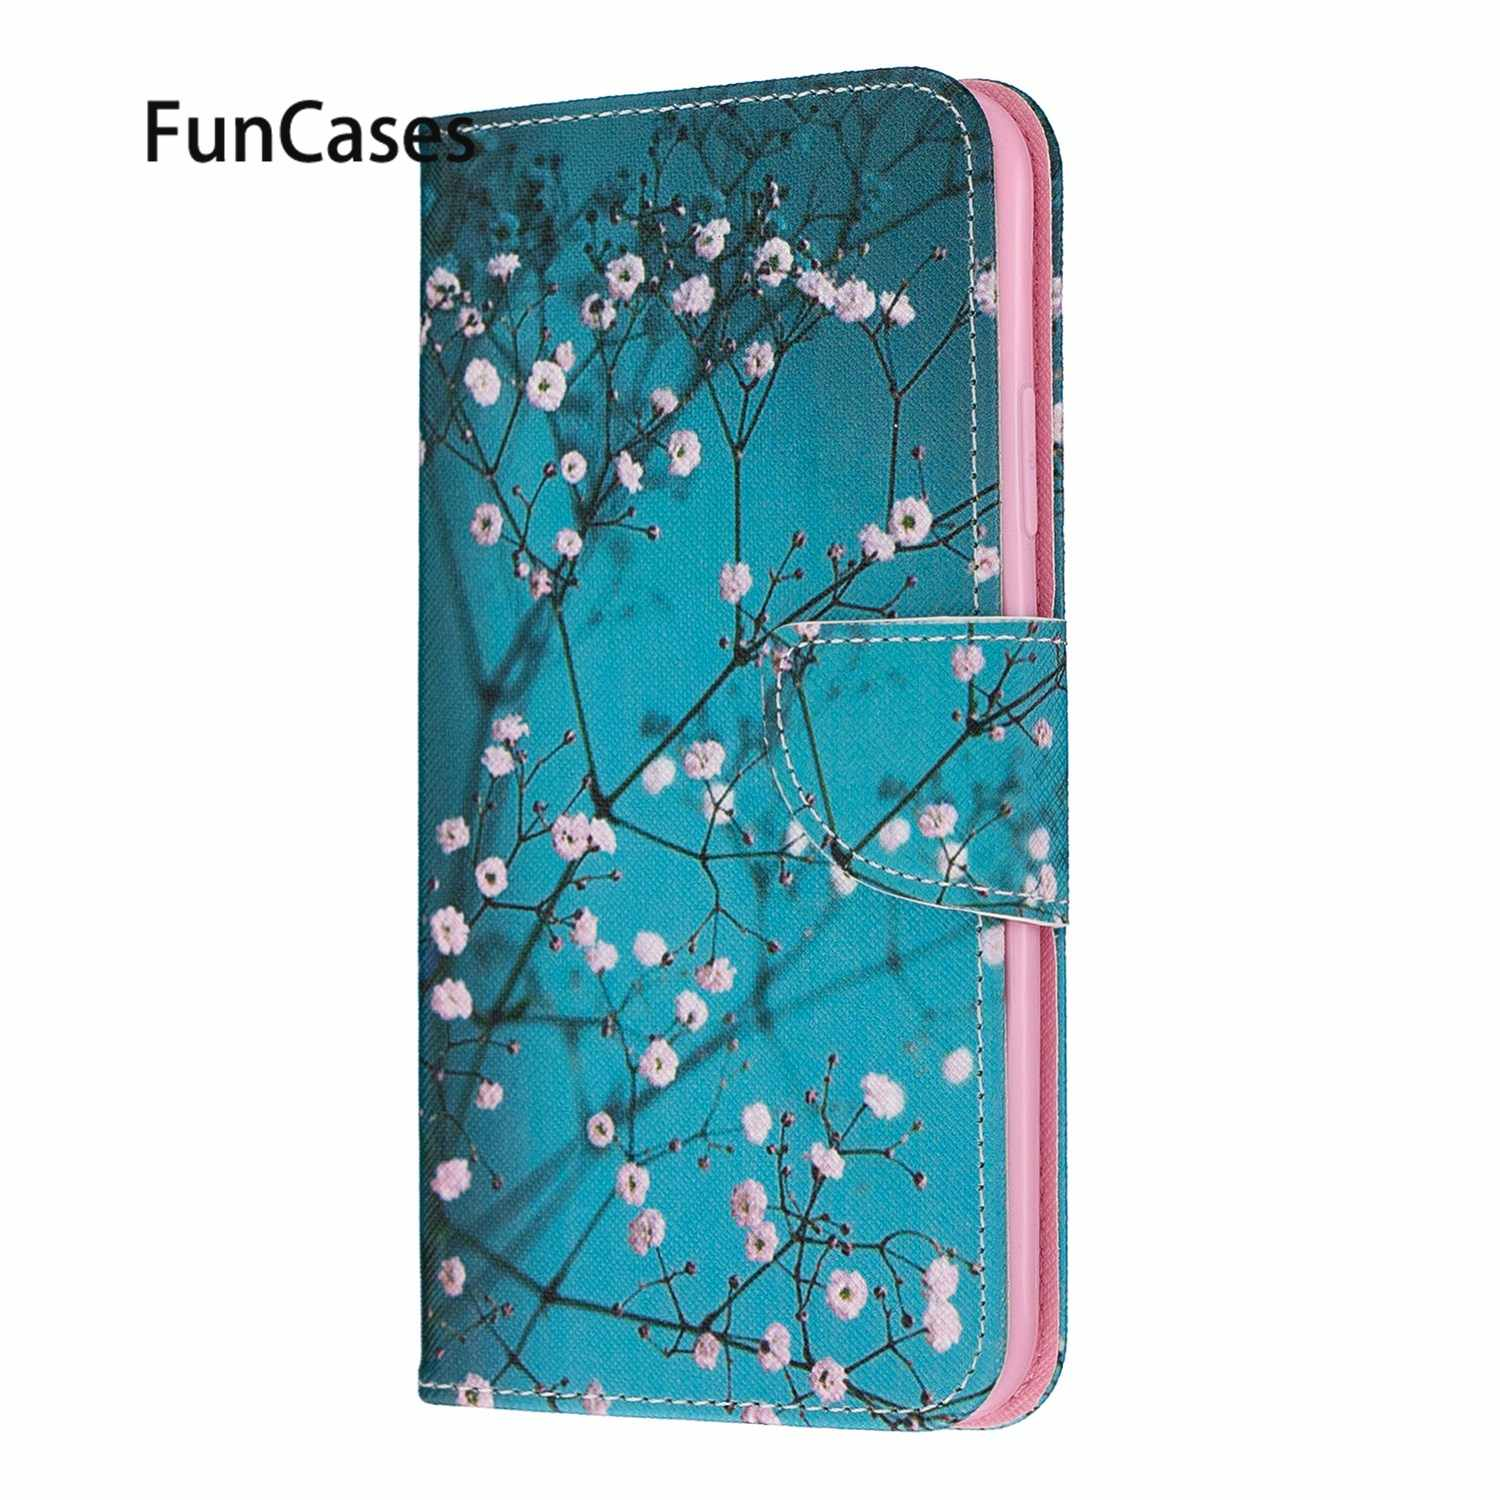 Cases For funda Samsung A40 Portable Samsung Galaxy carcaso A51 A71 A10E A10 A20E A10S A50 A30 A70 A20S PU Leather Phone Bag